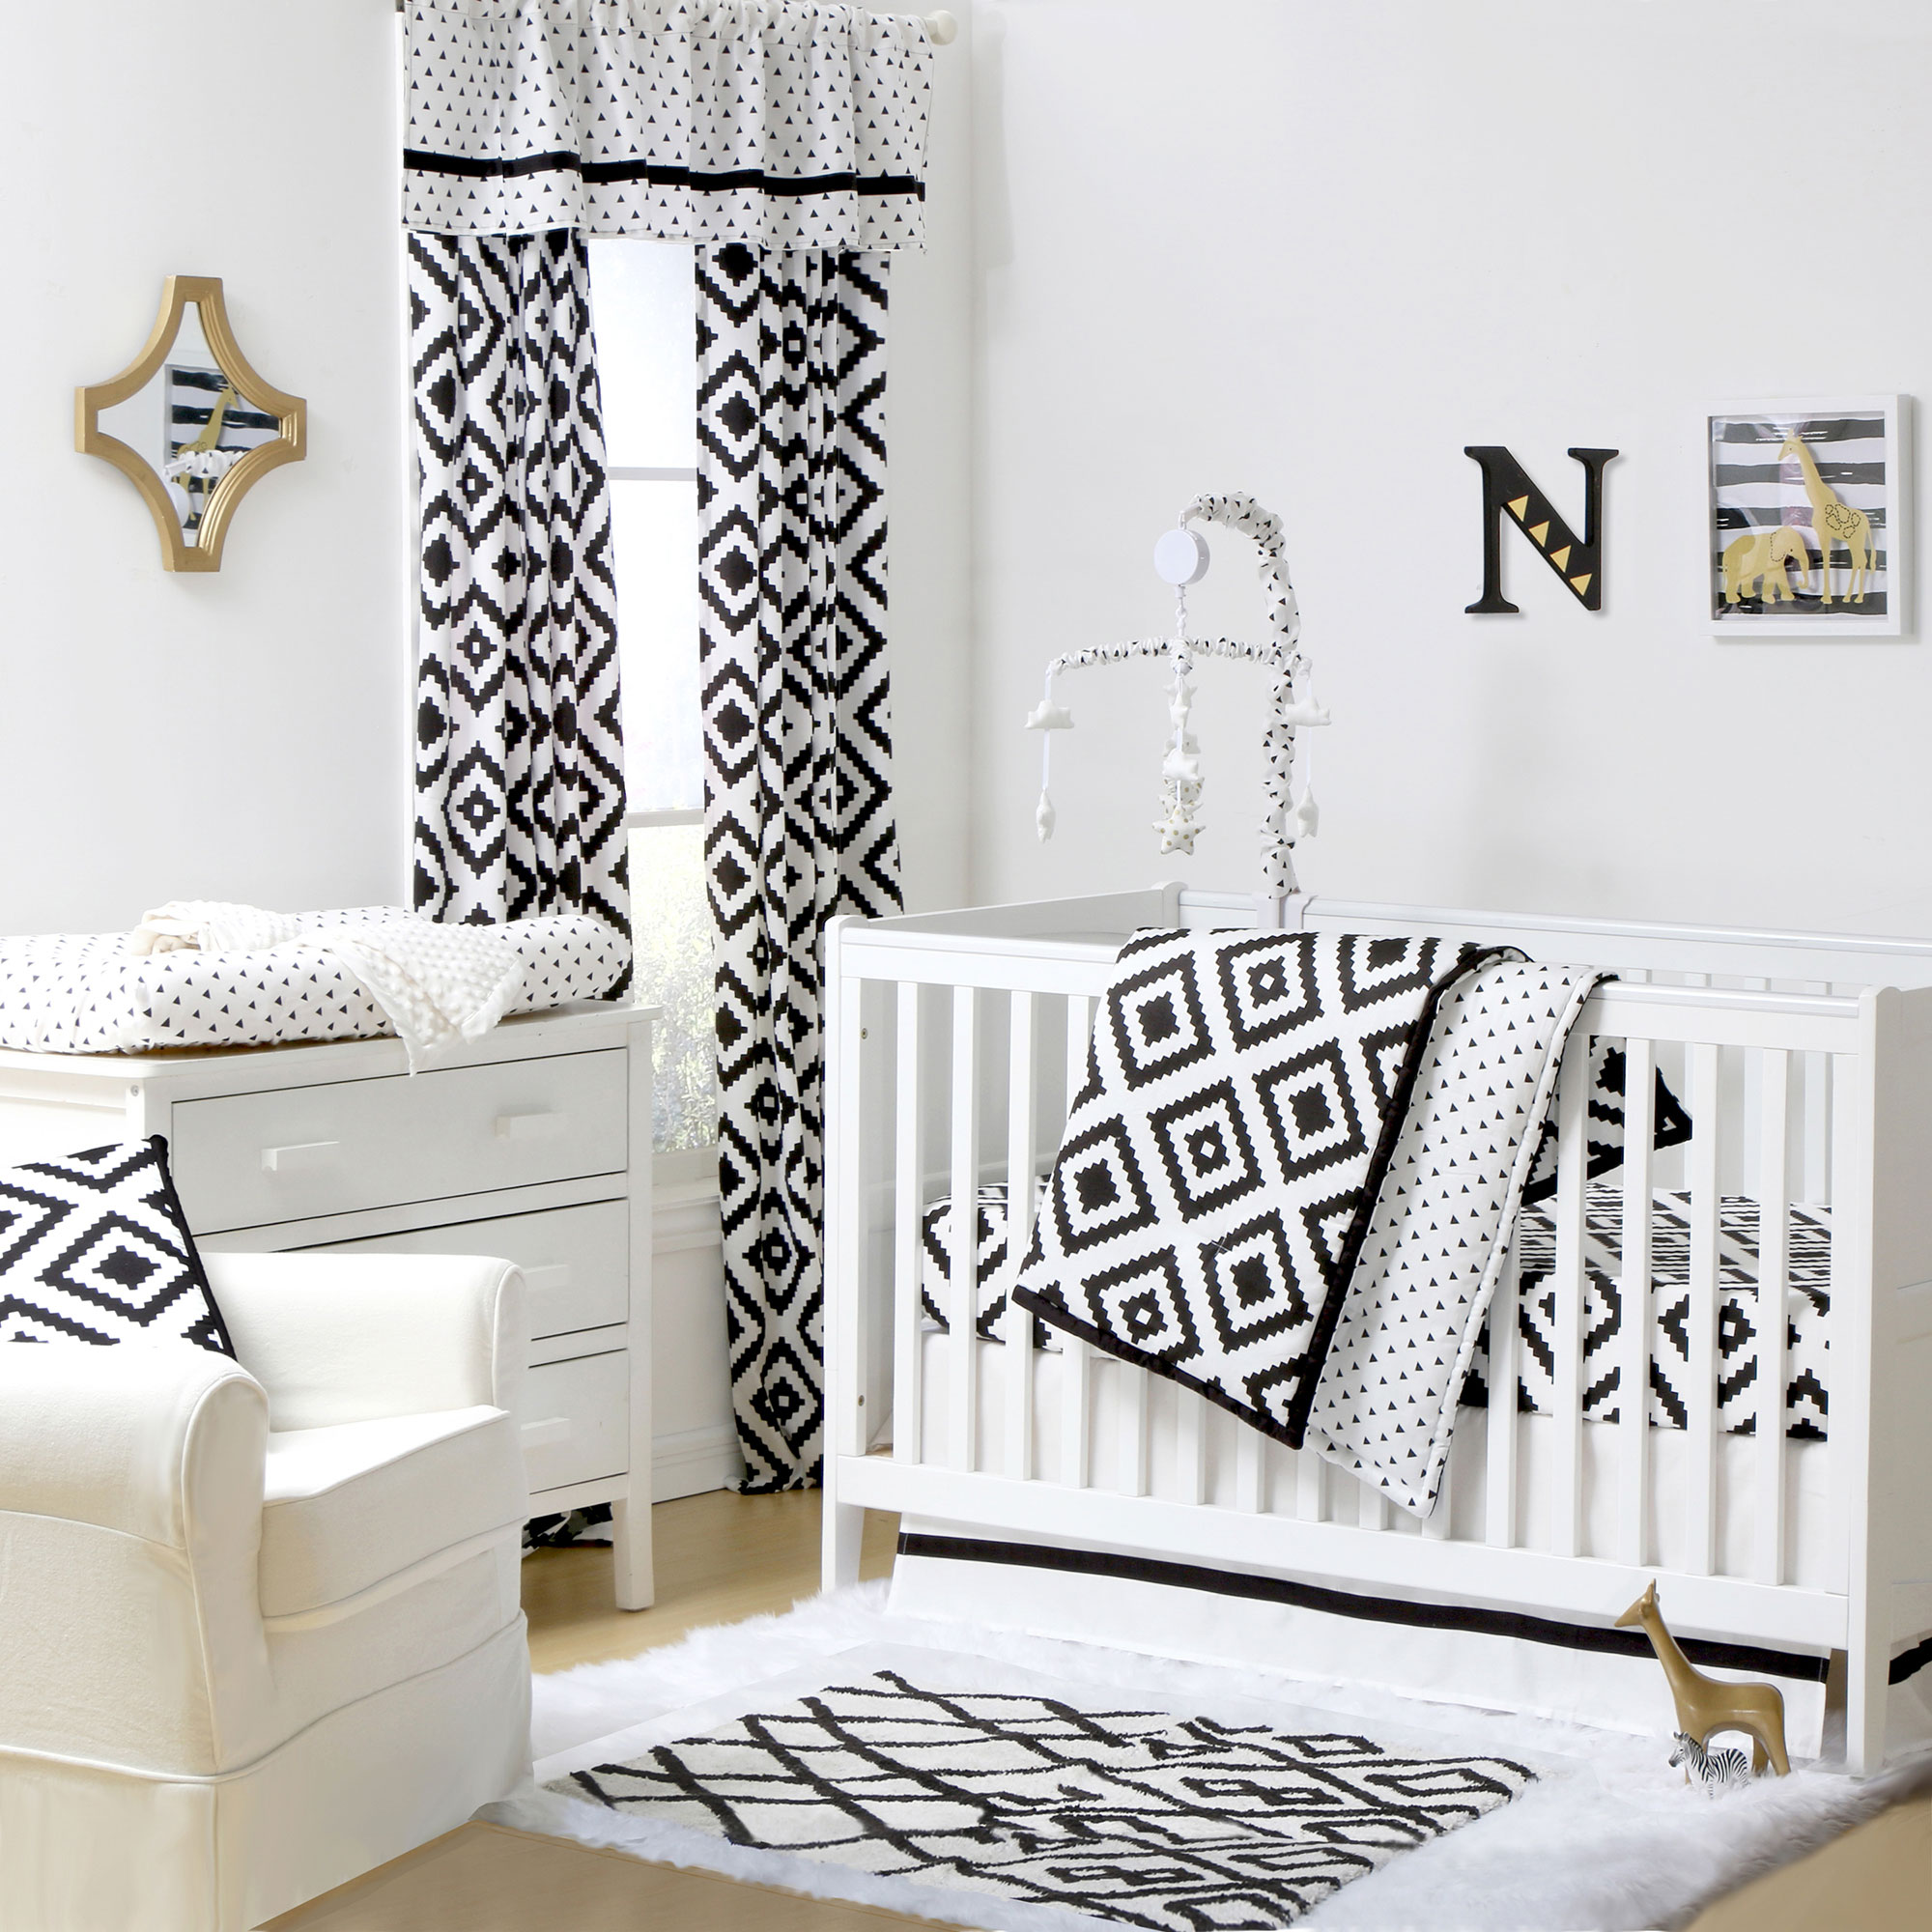 The Peanut Shell 4 Piece Baby Crib Bedding Set - Black Diamond Tile and Geometric Prints - 100% Cotton Quilt, Dust Ruffle, Fitted Sheet, and Mobile